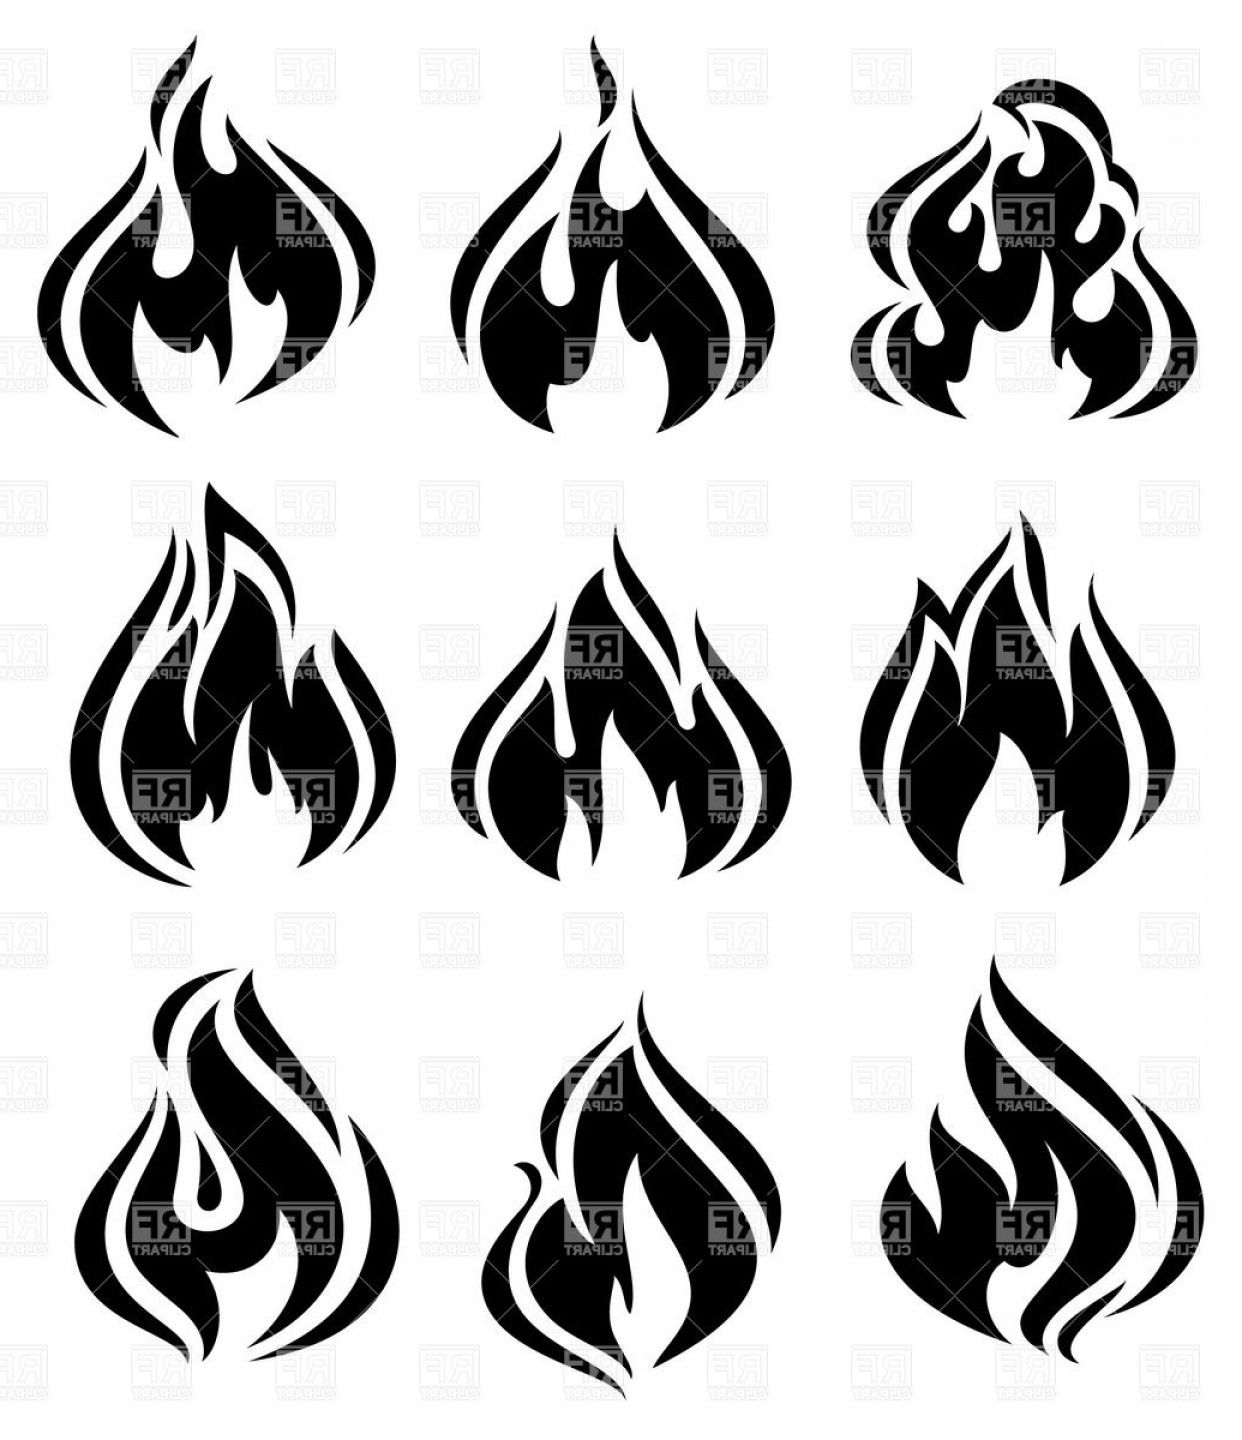 Symbolic Fire And Flames Simple Black Silhouettes Vector Clipart.